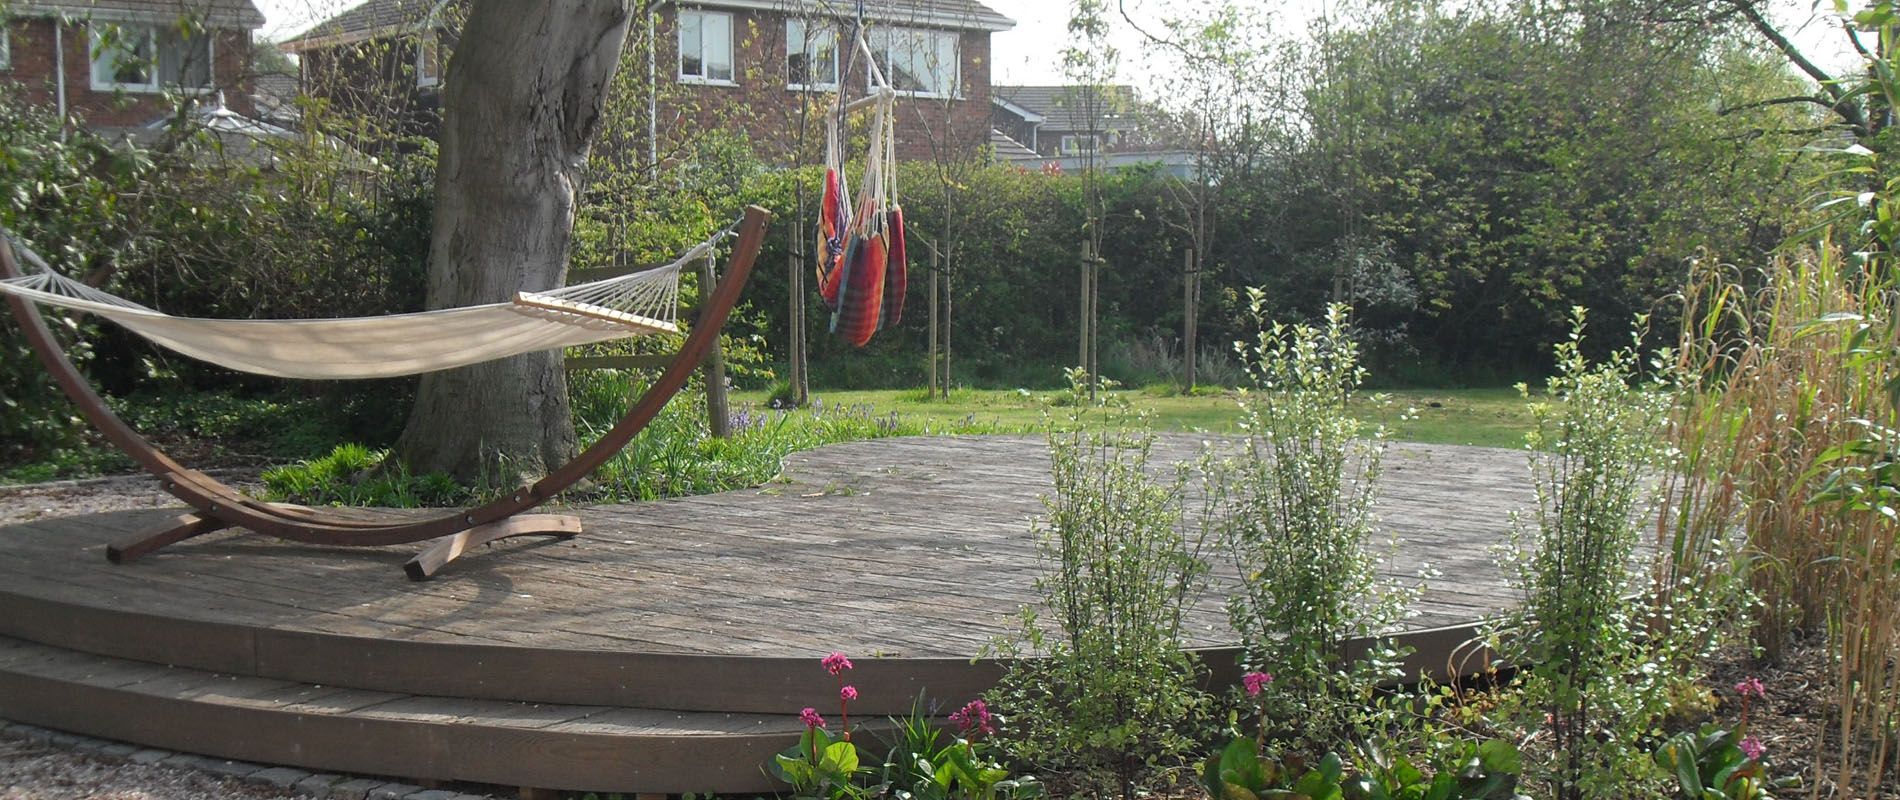 Garden Design & Build Cheshire